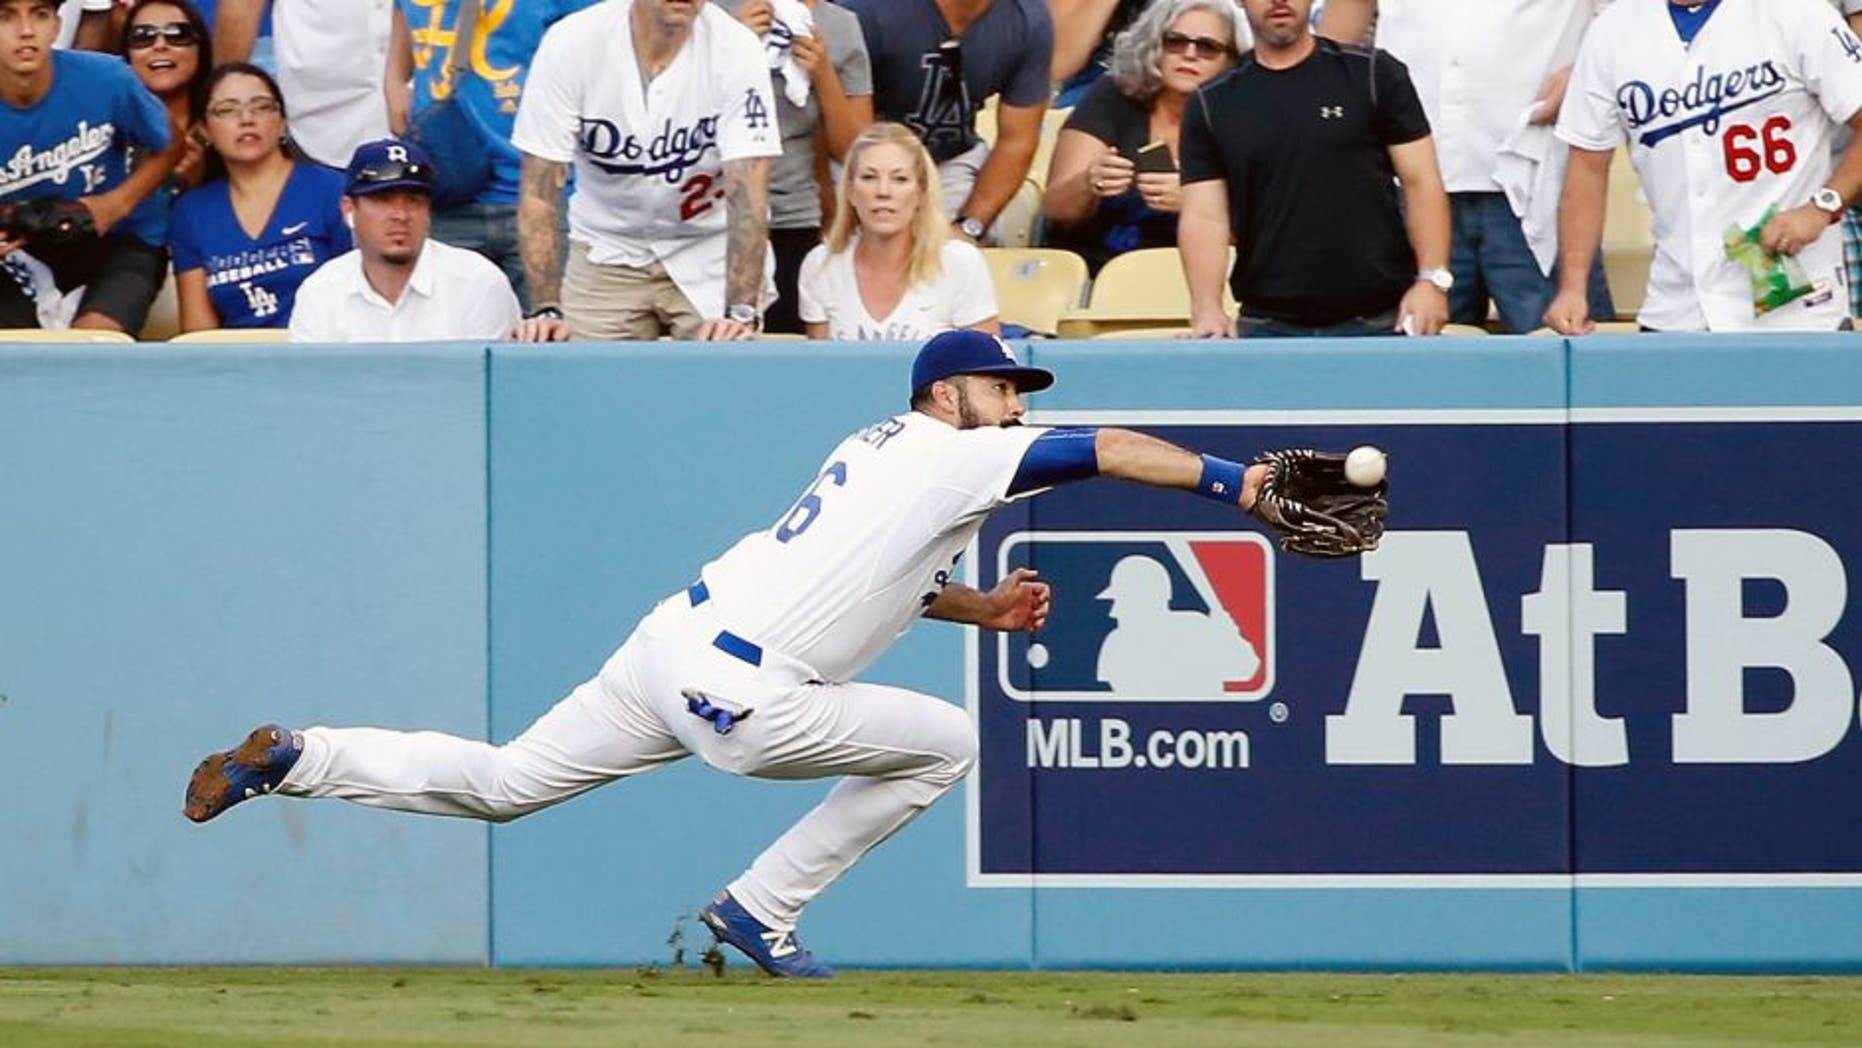 LOS ANGELES, CA - OCTOBER 15: Andre Ethier #16 of the Los Angeles Dodgers makes a diving catch on a ball hit by Michael Conforto #30 of the New York Mets in the second inning in game five of the National League Division Series at Dodger Stadium on October 15, 2015 in Los Angeles, California. (Photo by Sean M. Haffey/Getty Images)